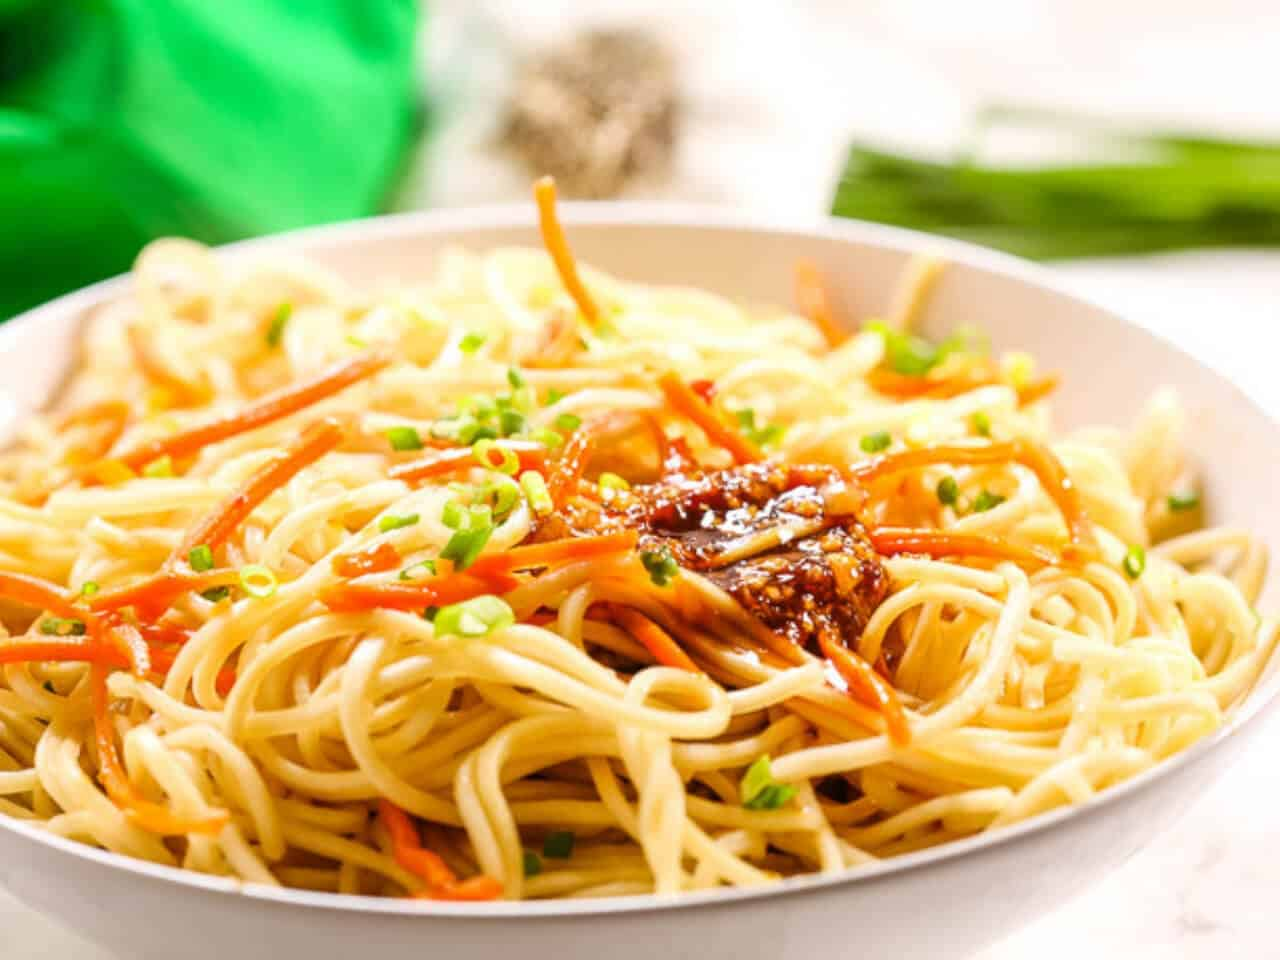 Easy sesame noodles in a white bowl with a green napkin